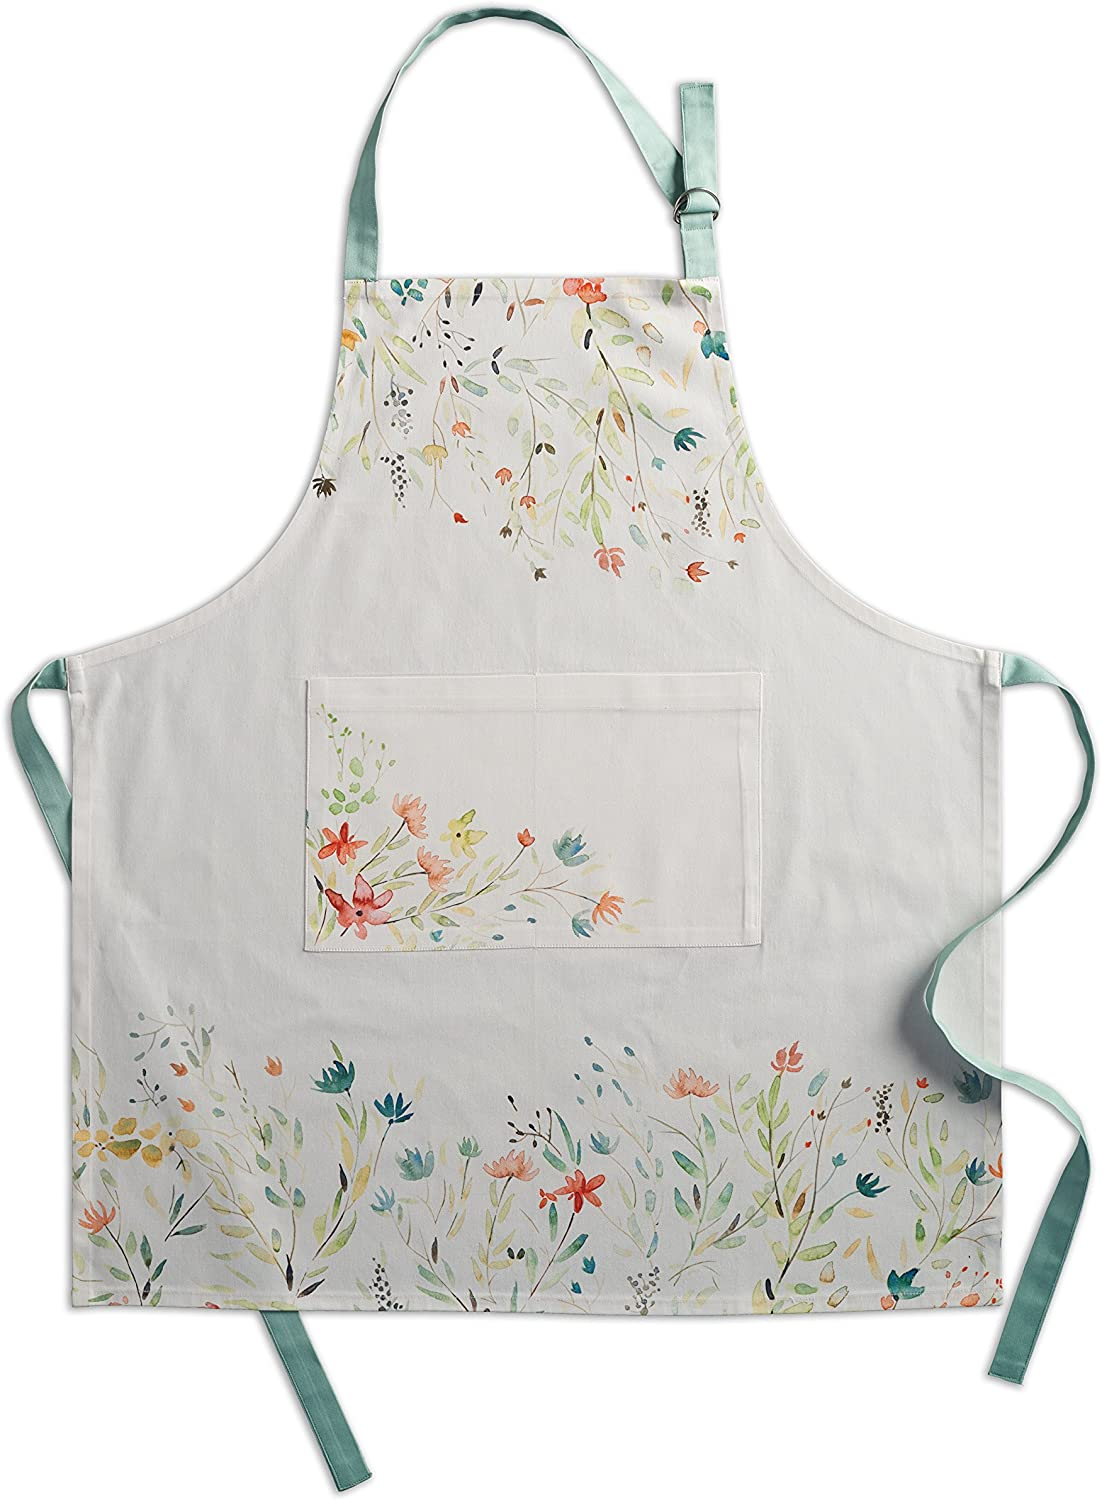 Maison d Hermine Floral Love 100/% Cotton 1 Piece Apron with an Adjustable Neck /& Hidden Centre Pocket with Long Ties for Women//Men Chef 27.50x31.50